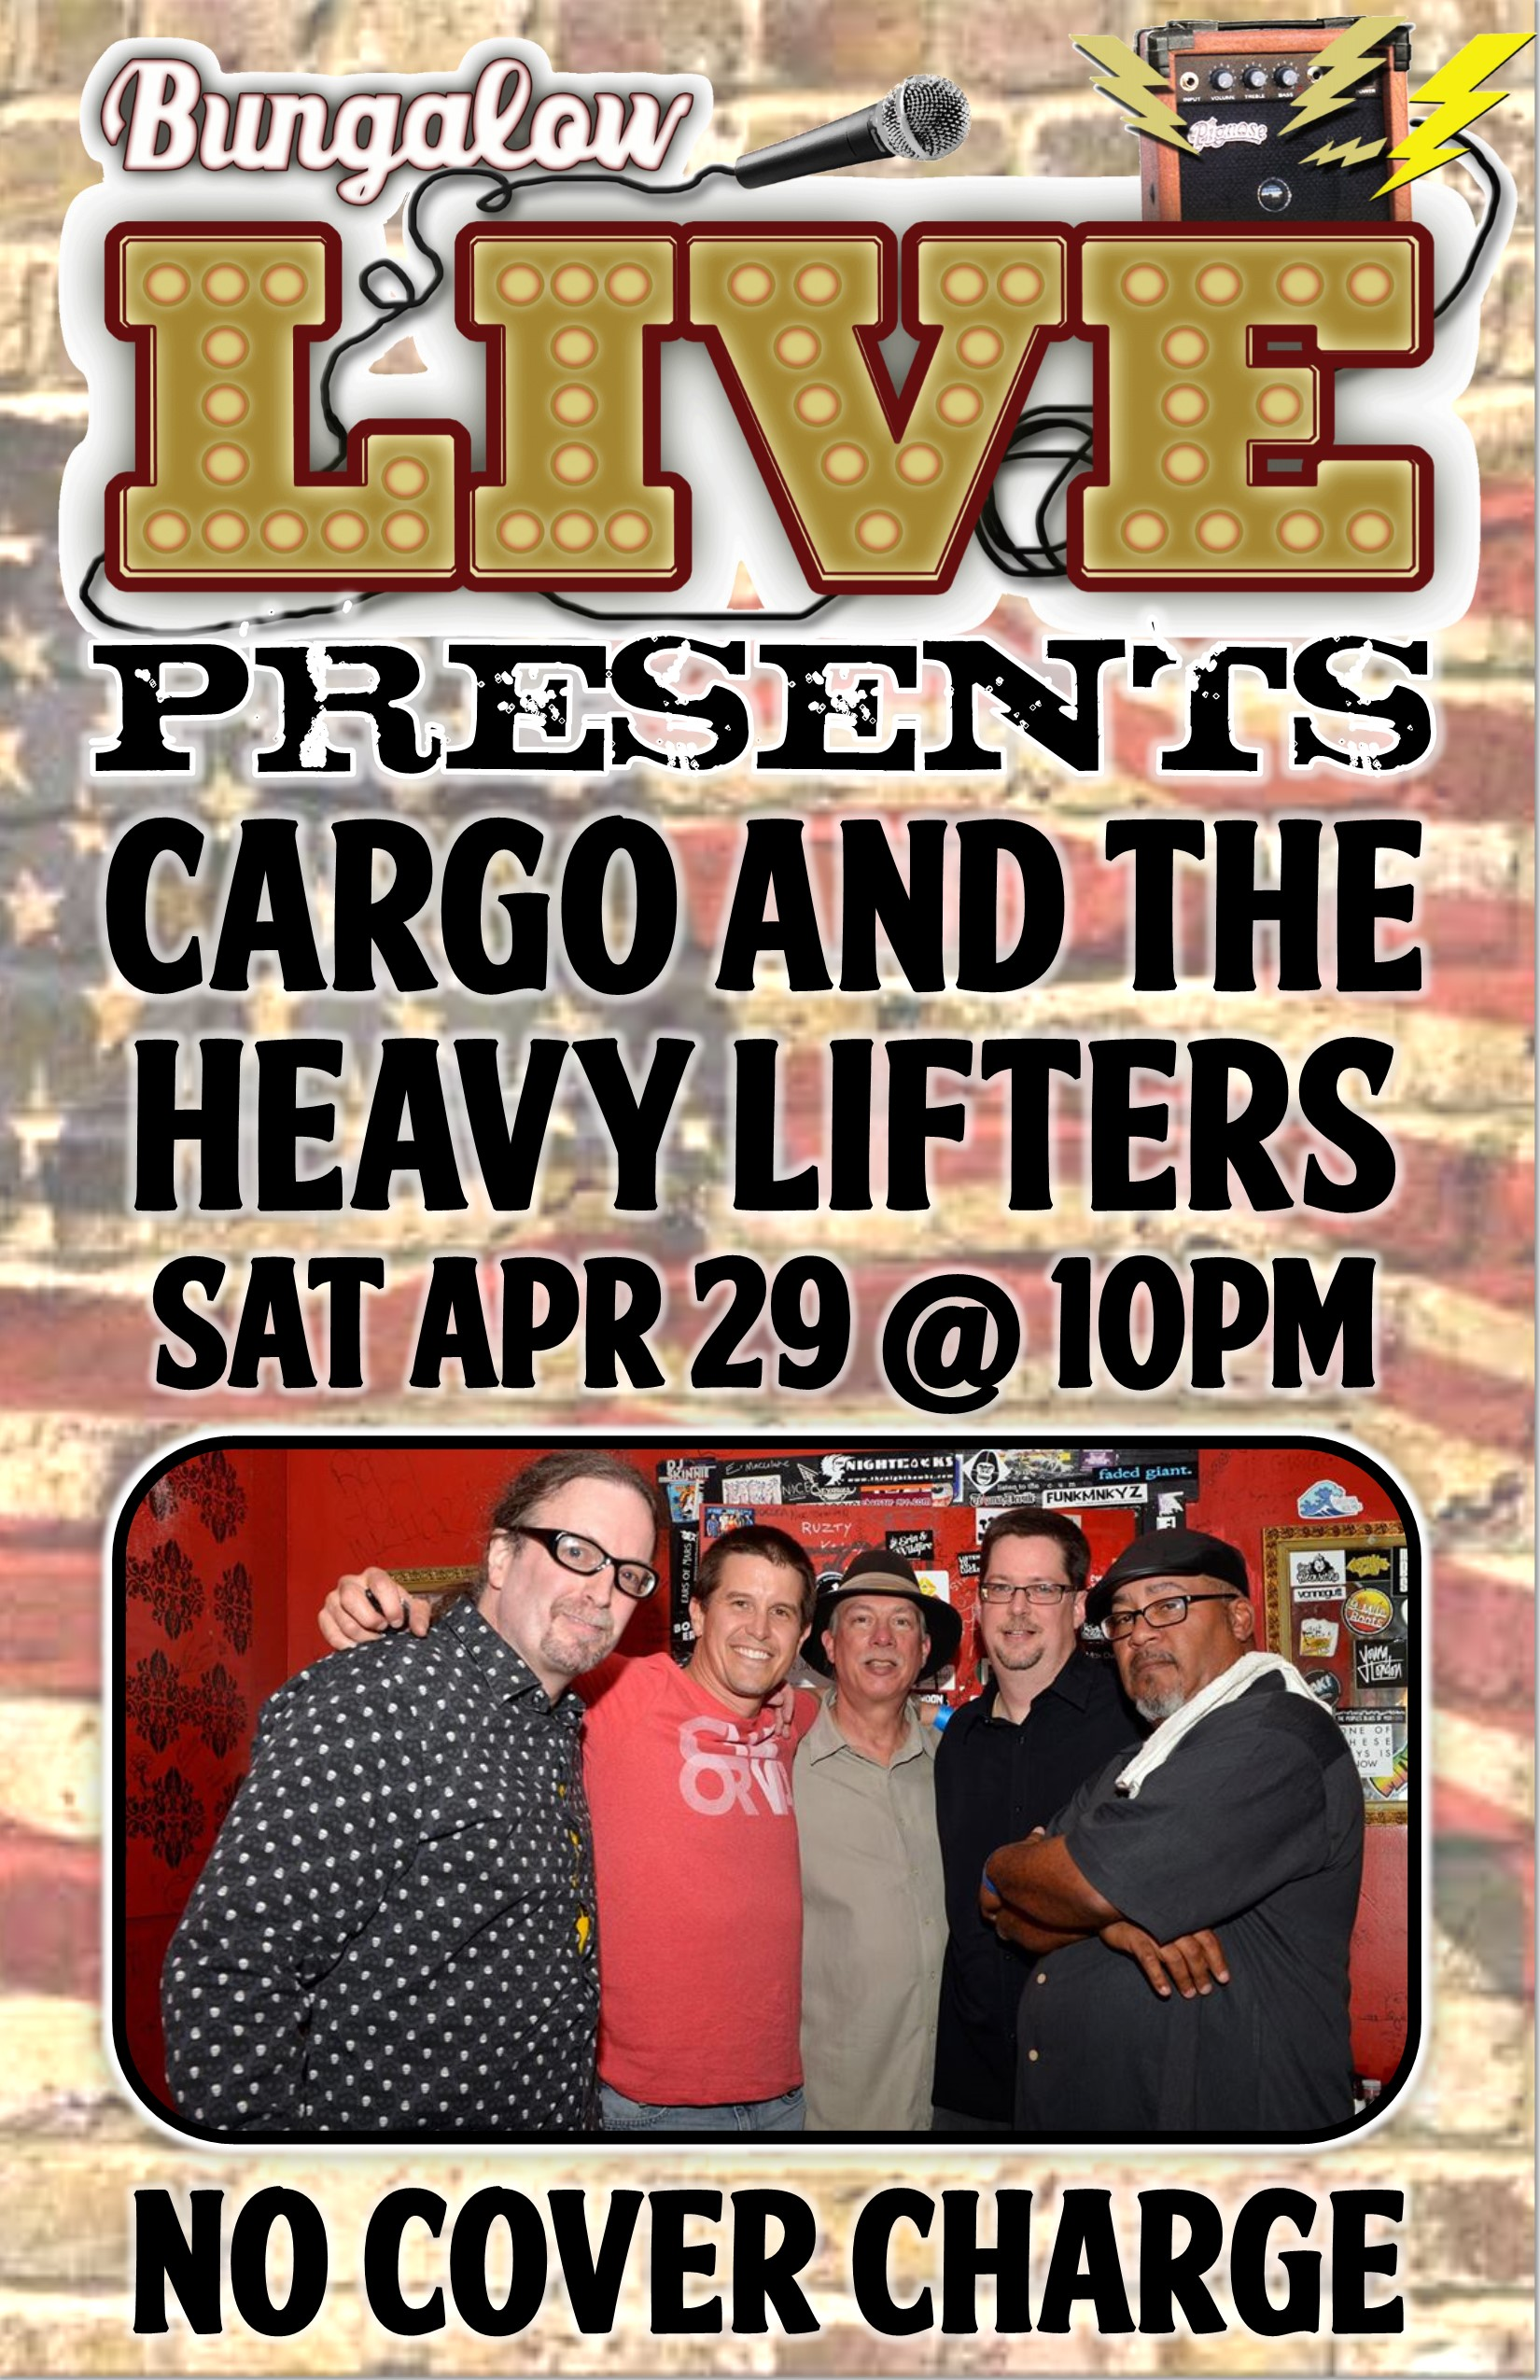 Cargo and the heavy lifters